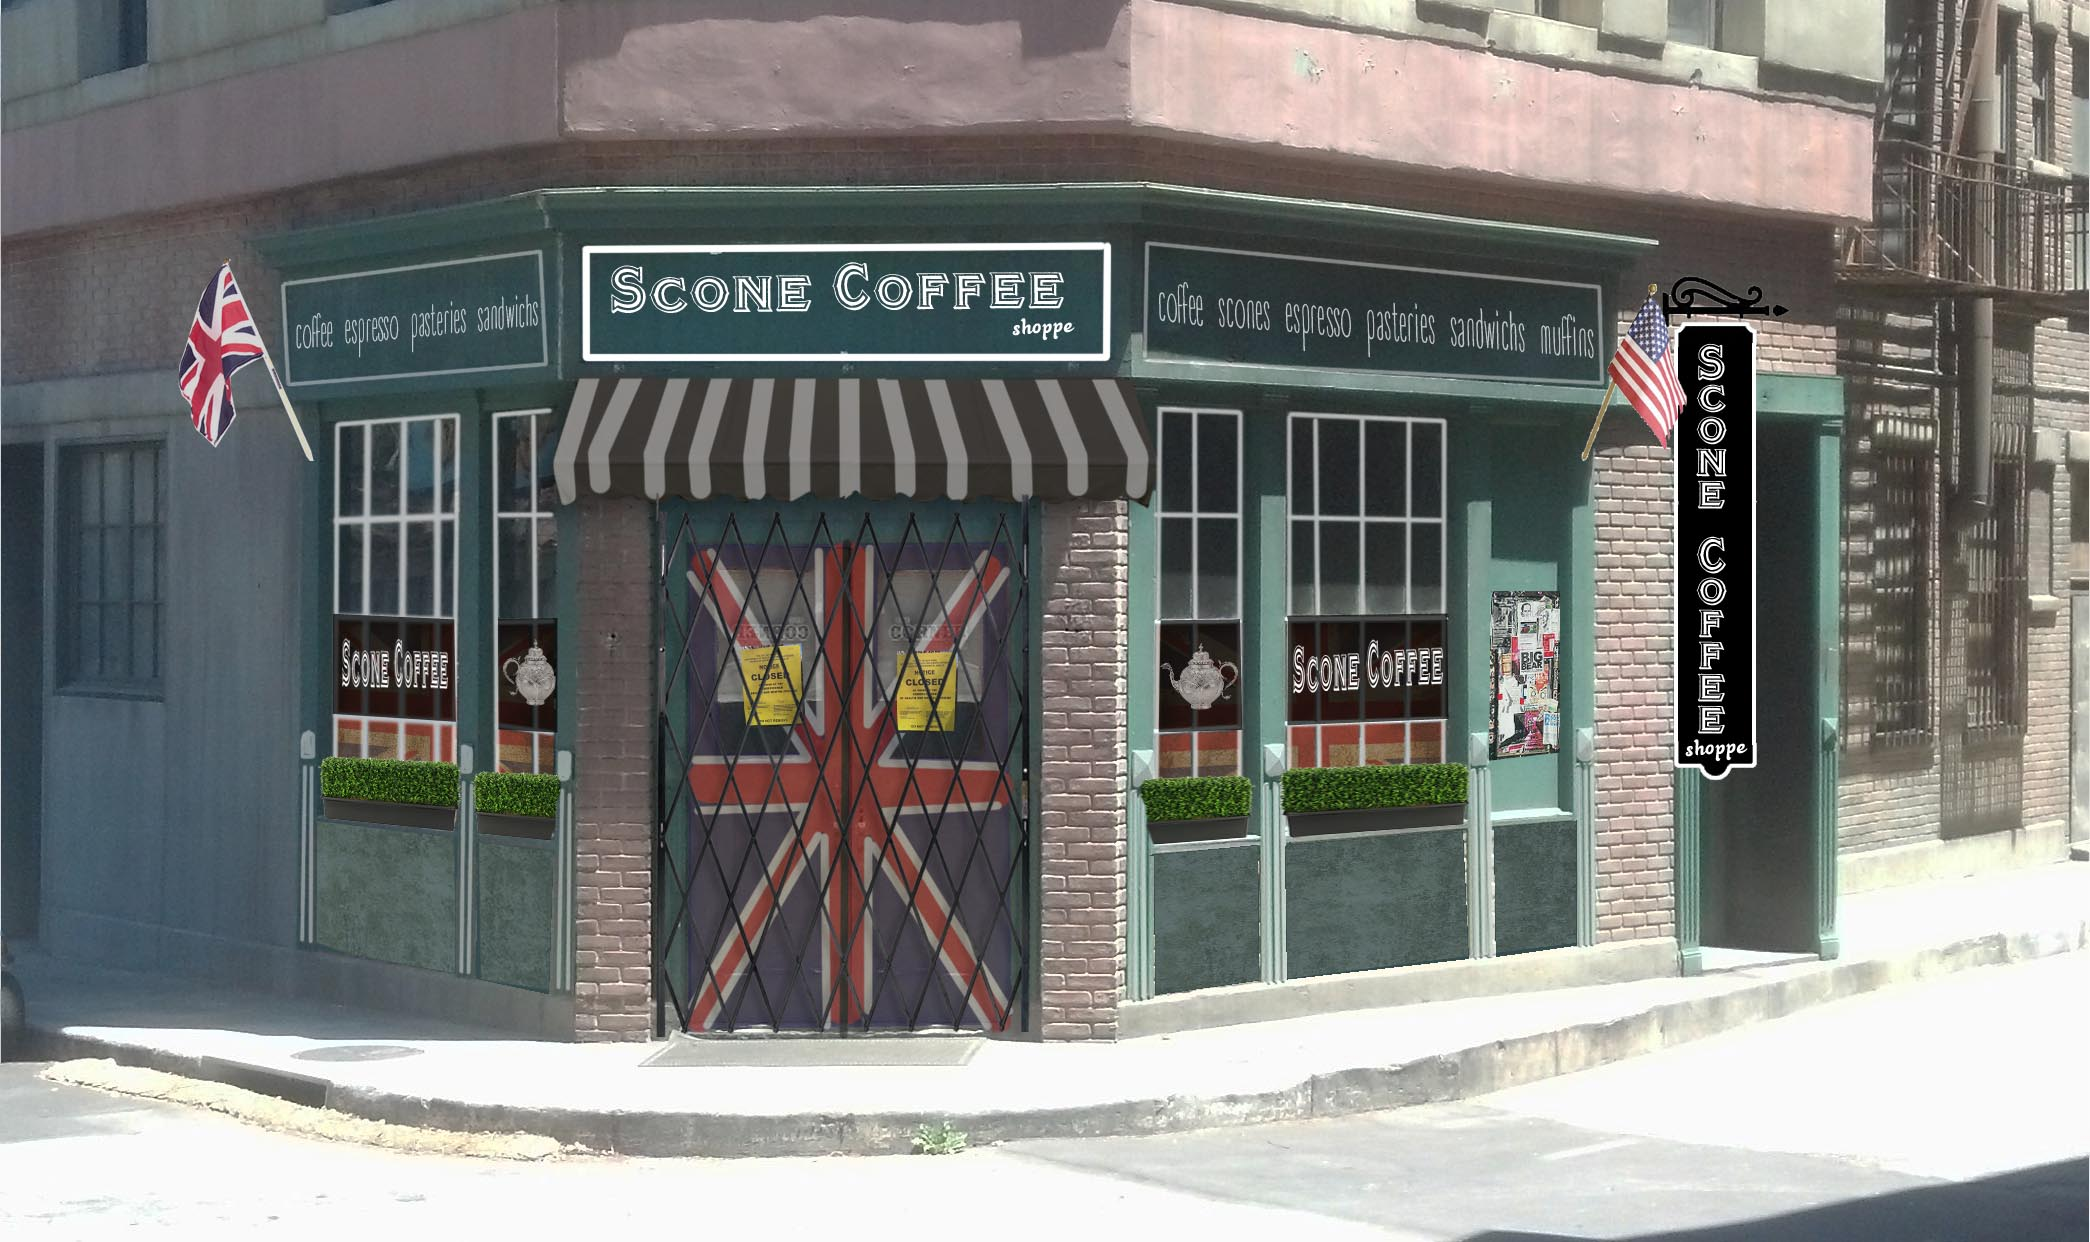 SCONE COFFEE